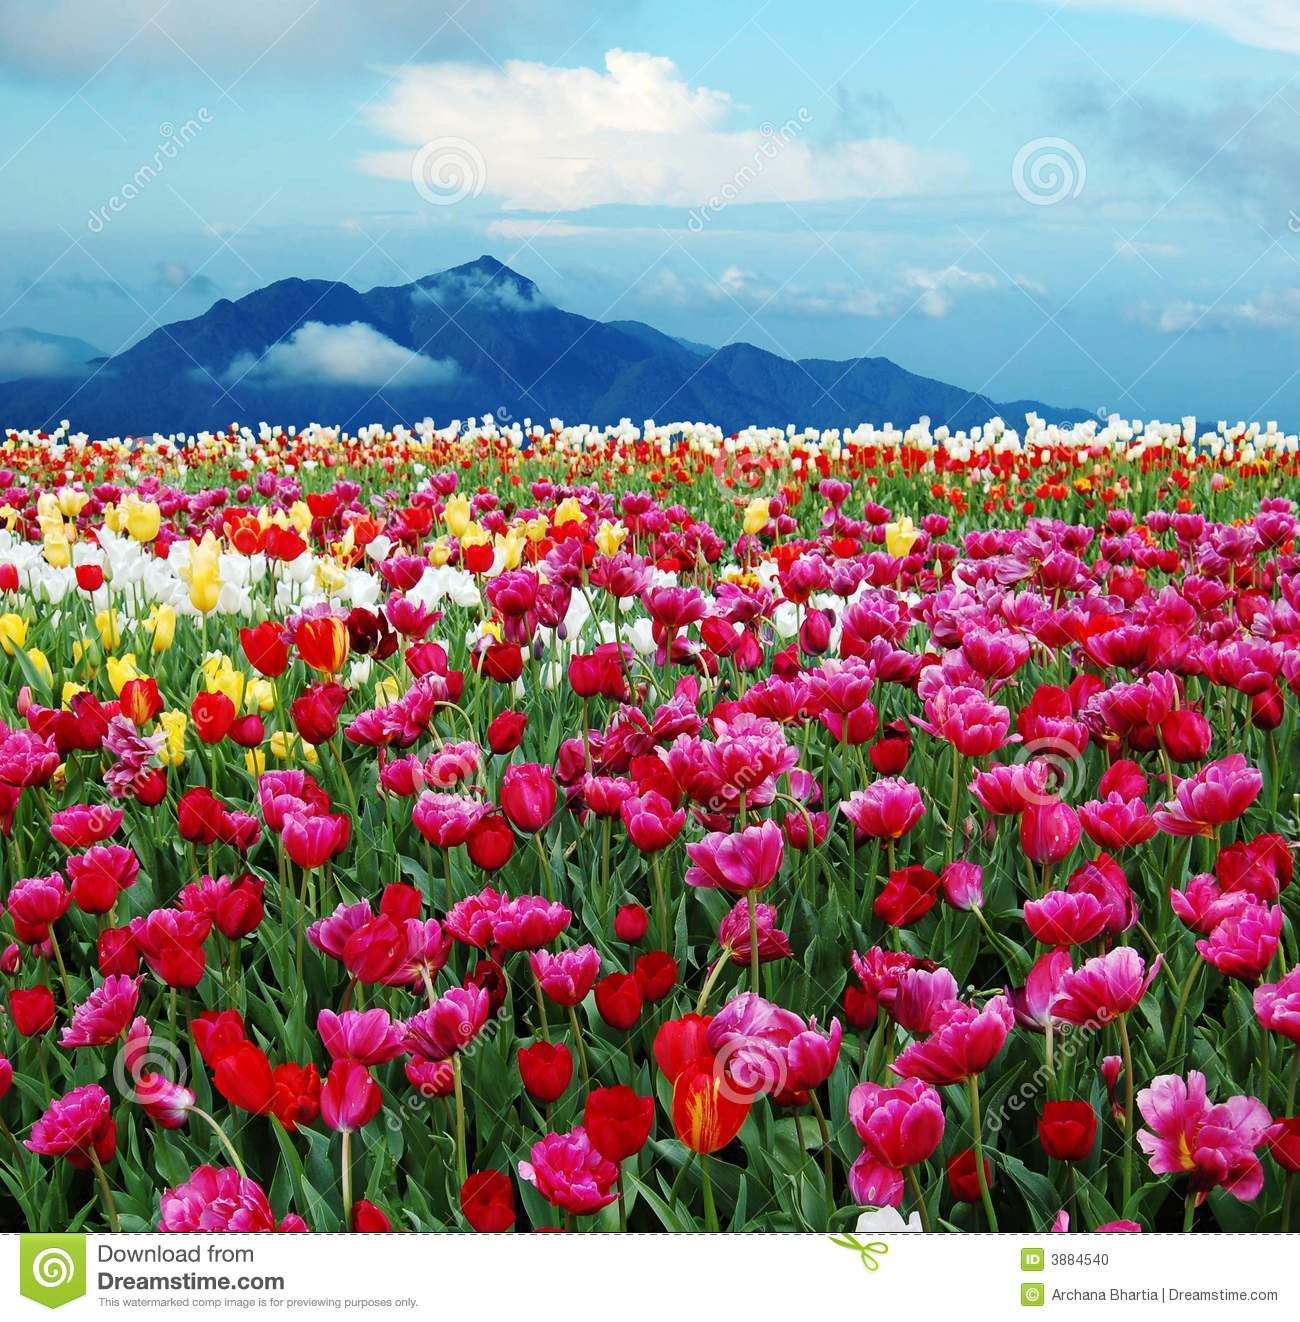 Tulips in a field with cloudy sky and hills in the background.